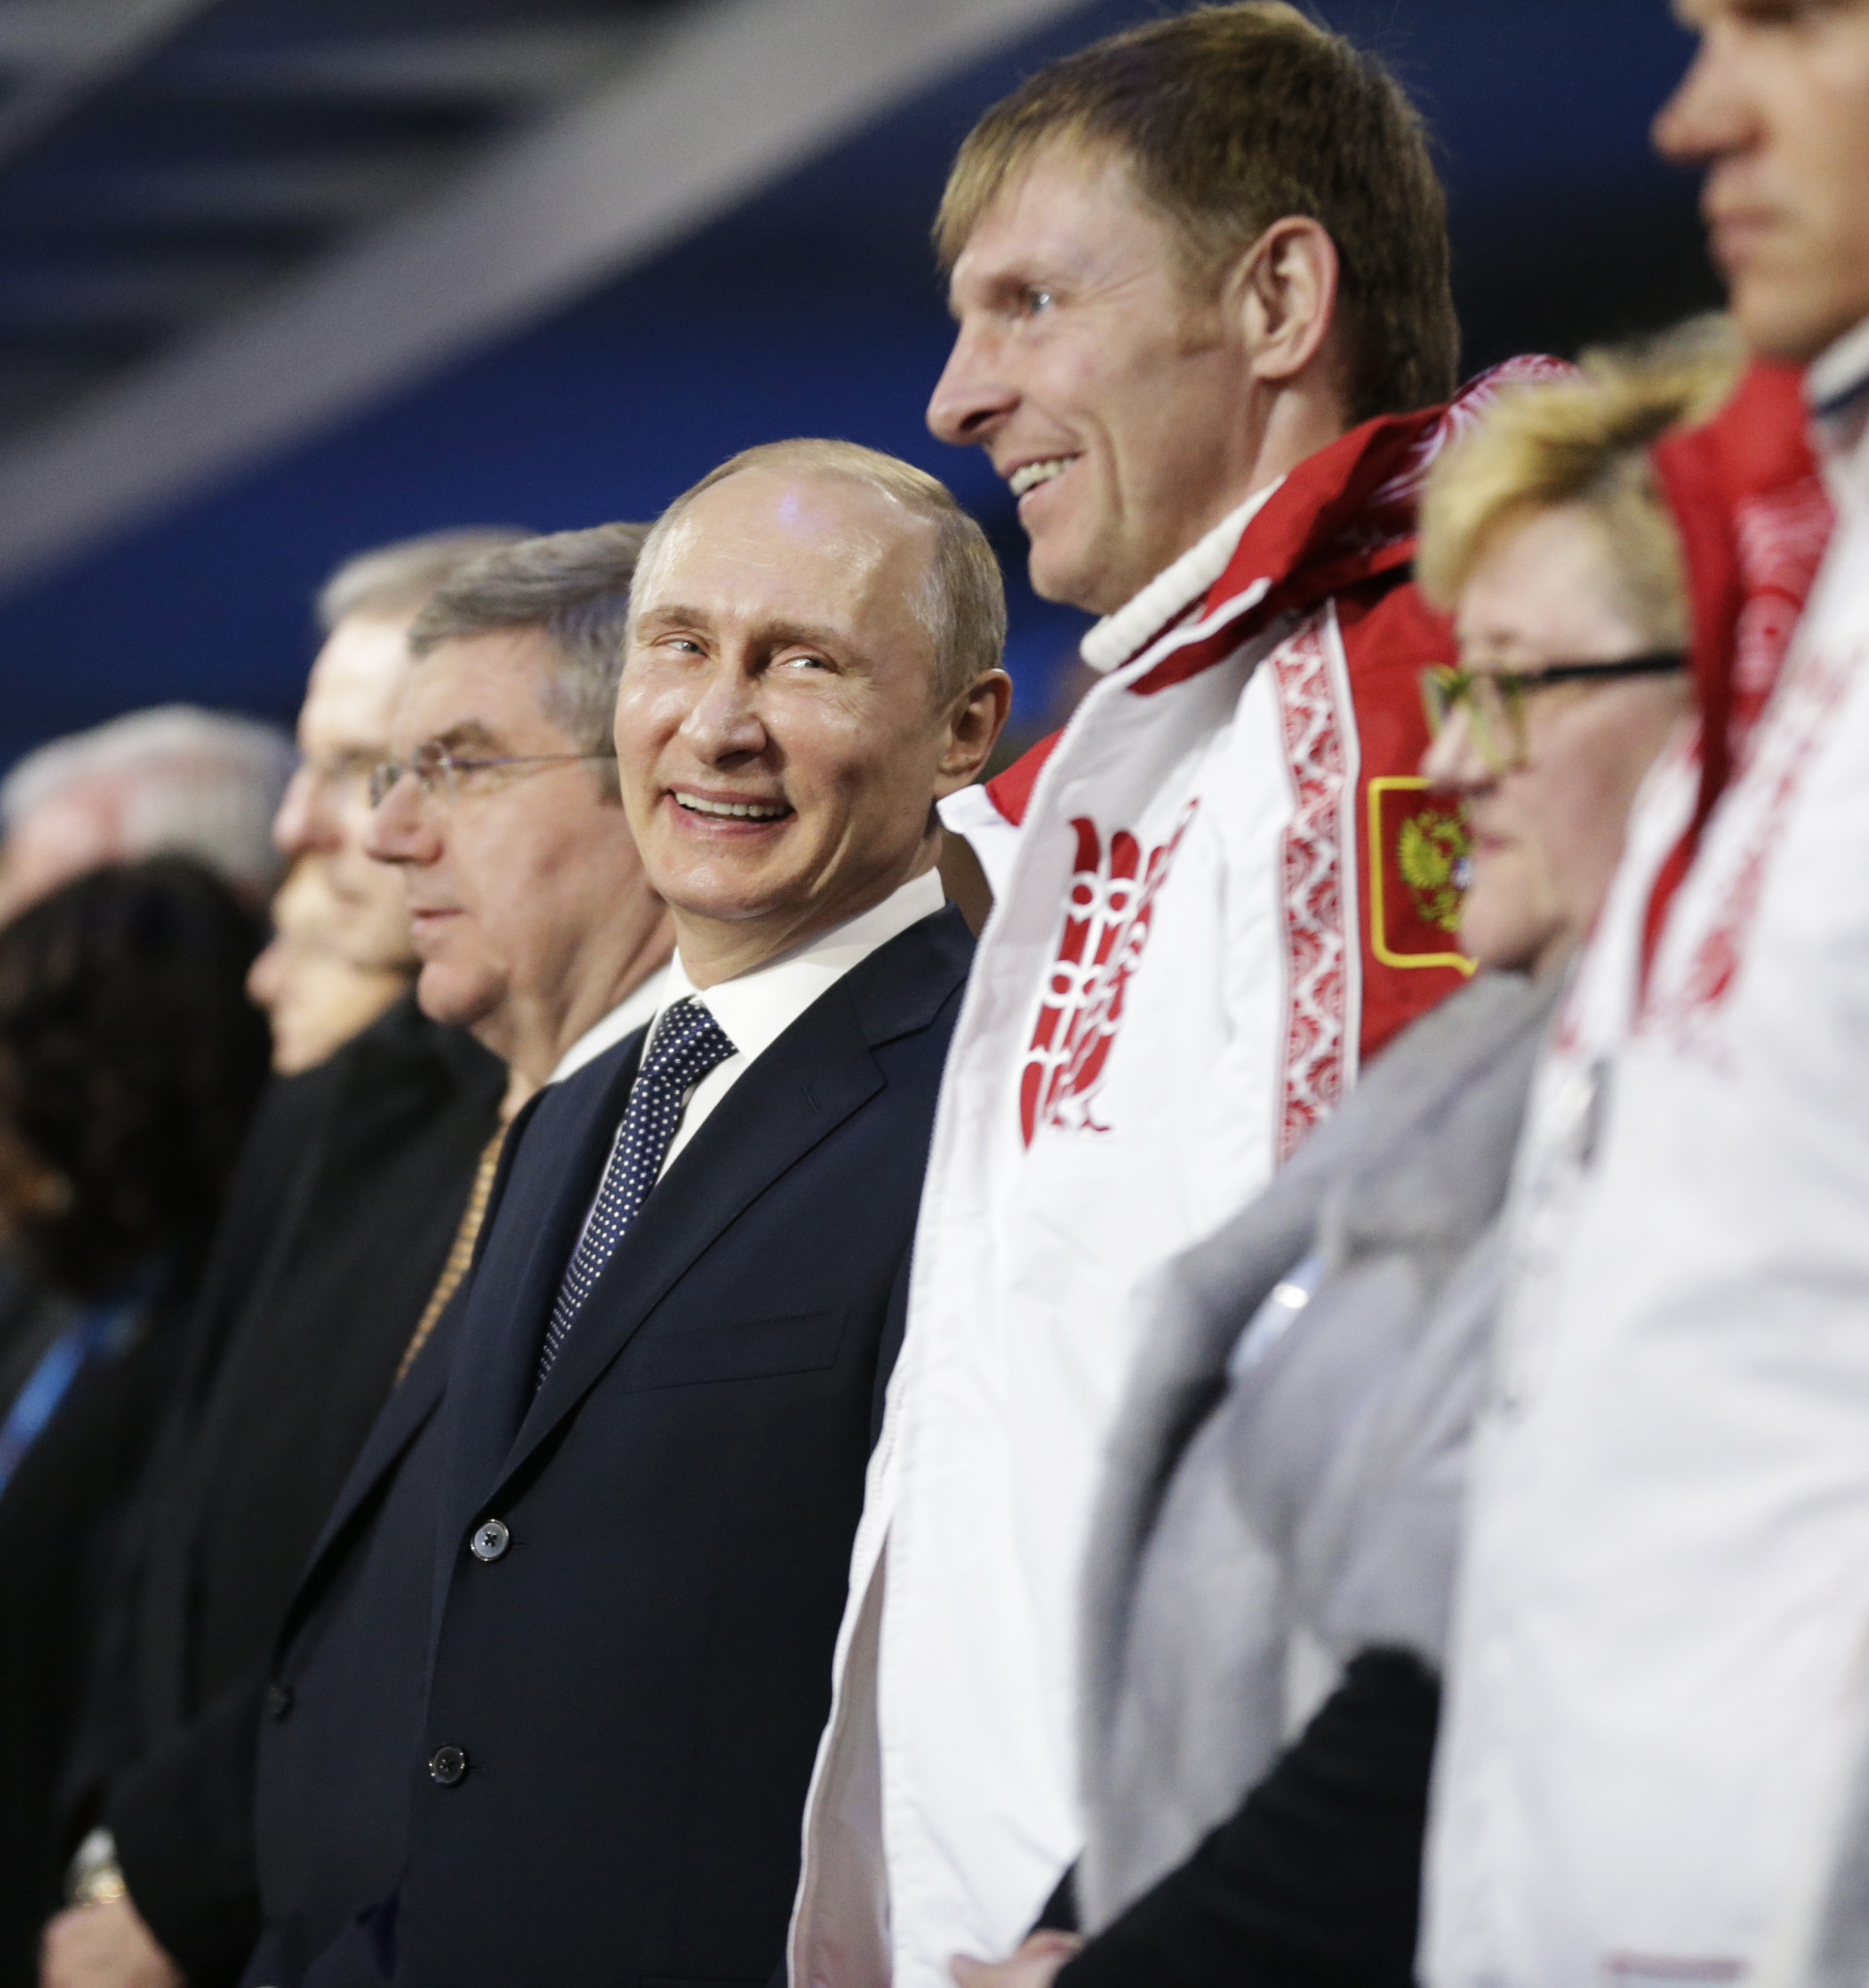 Alexander Zubkov, pictured here with Russian President Vladimir Putin during the Closing Ceremony of the 2014 Winter Olympic Games in Sochi, is the head of the Russian Bobsleigh Federation ©Getty Images